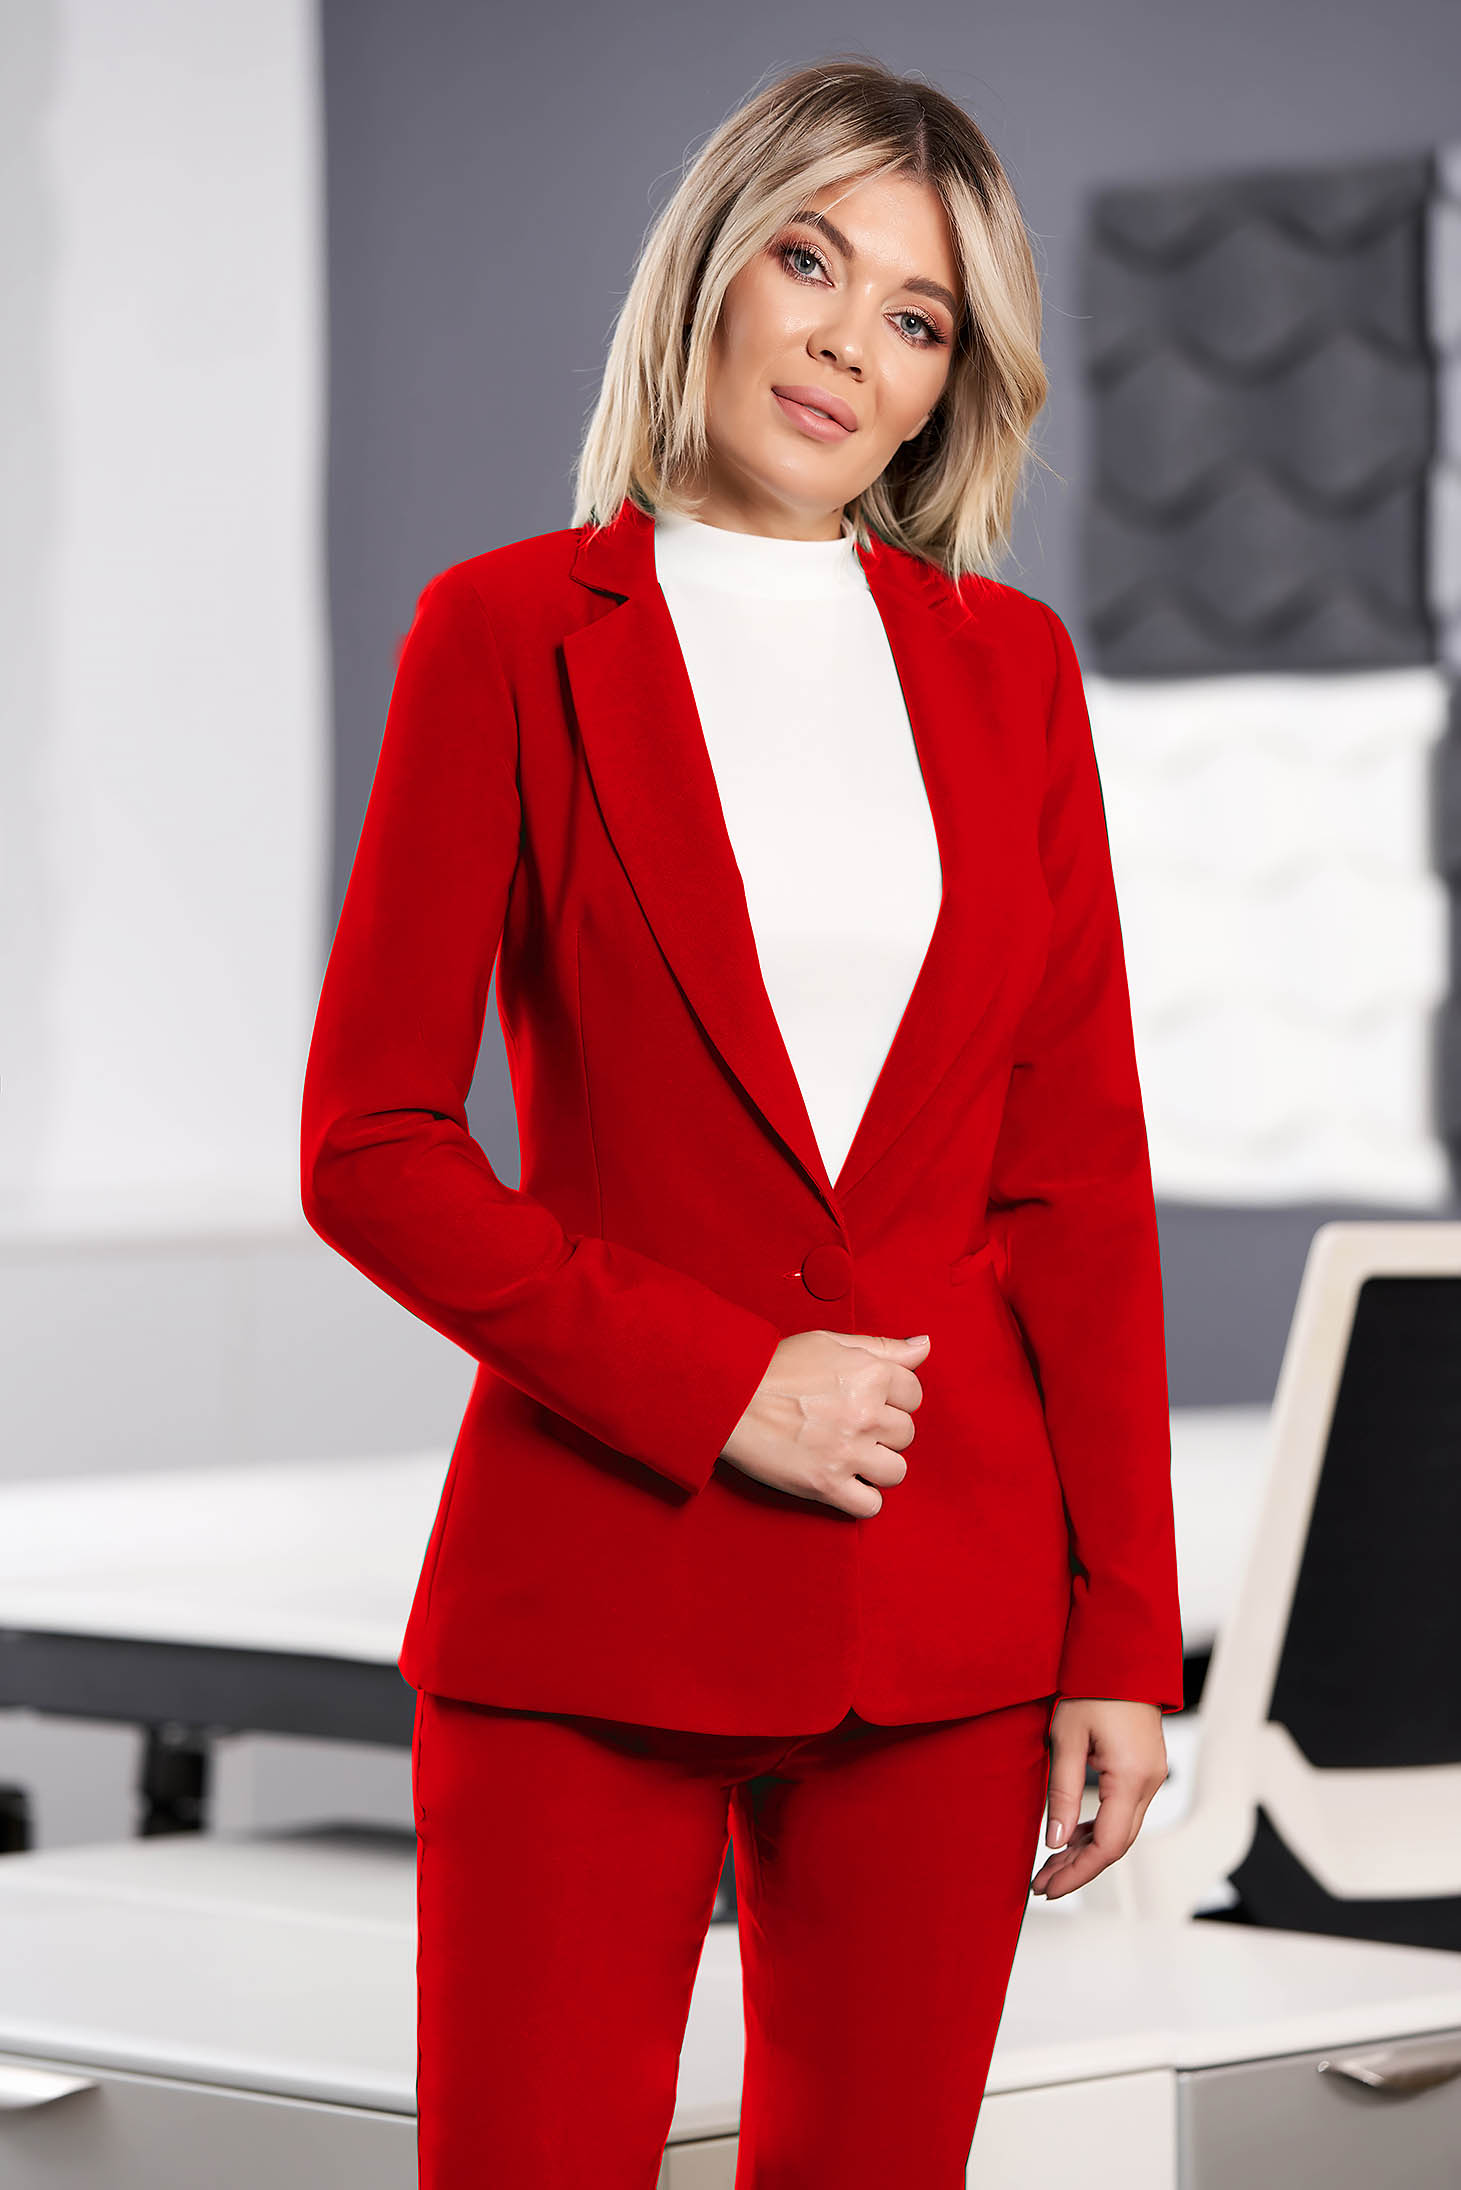 Red jacket office arched cut slightly elastic fabric